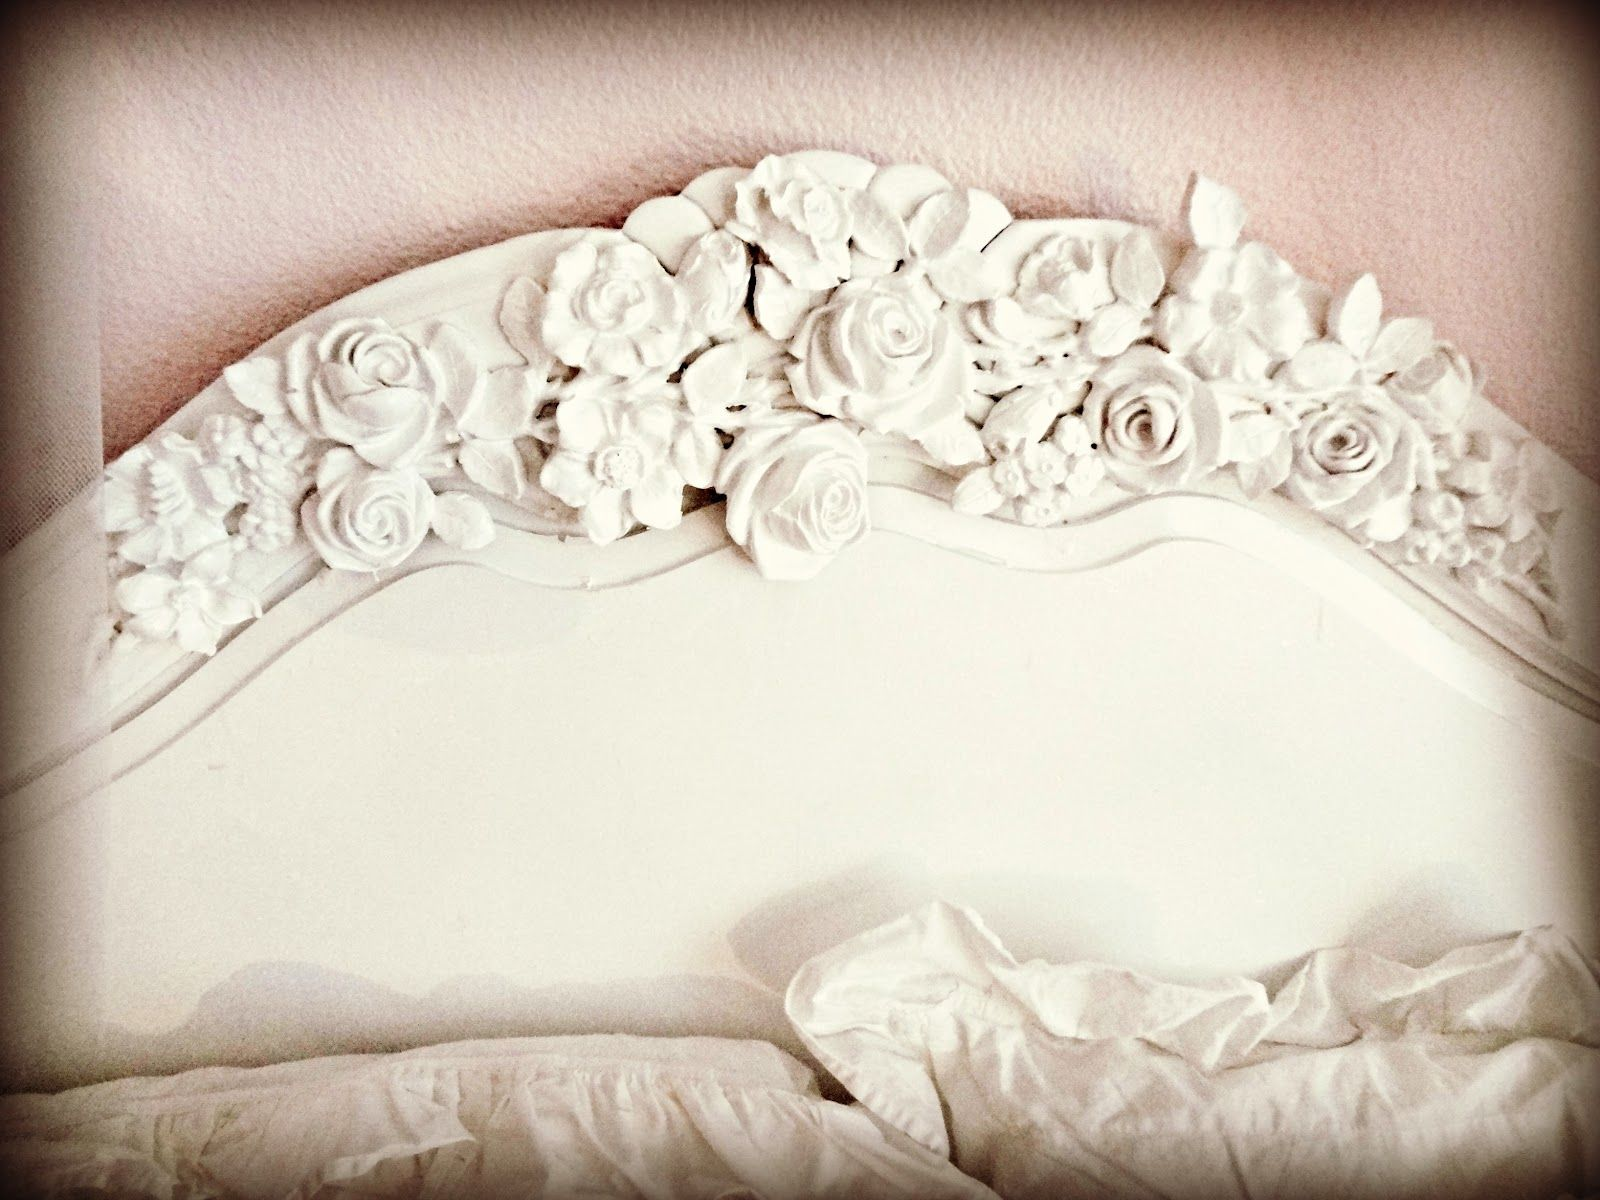 Headboard applique how to. the floral appliques are at www